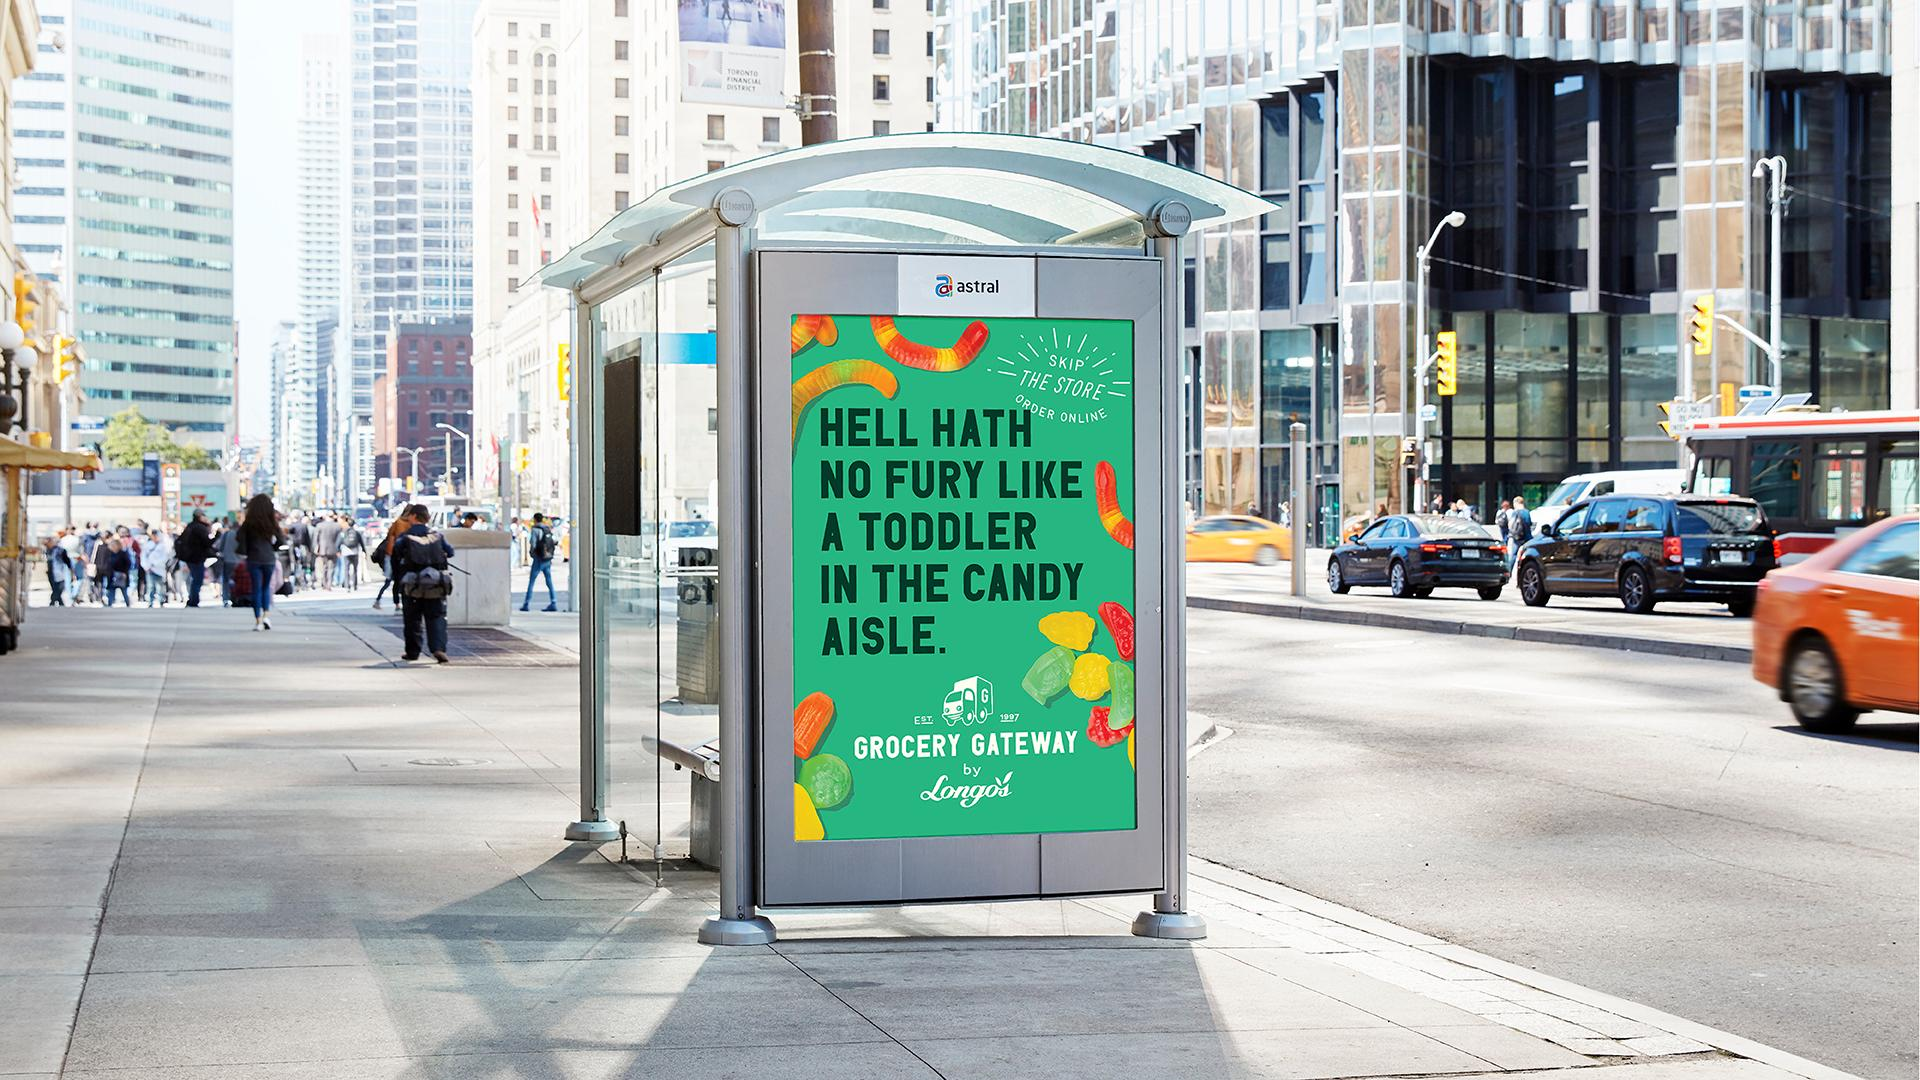 Grocery Gateway Outdoor Ad - Hell